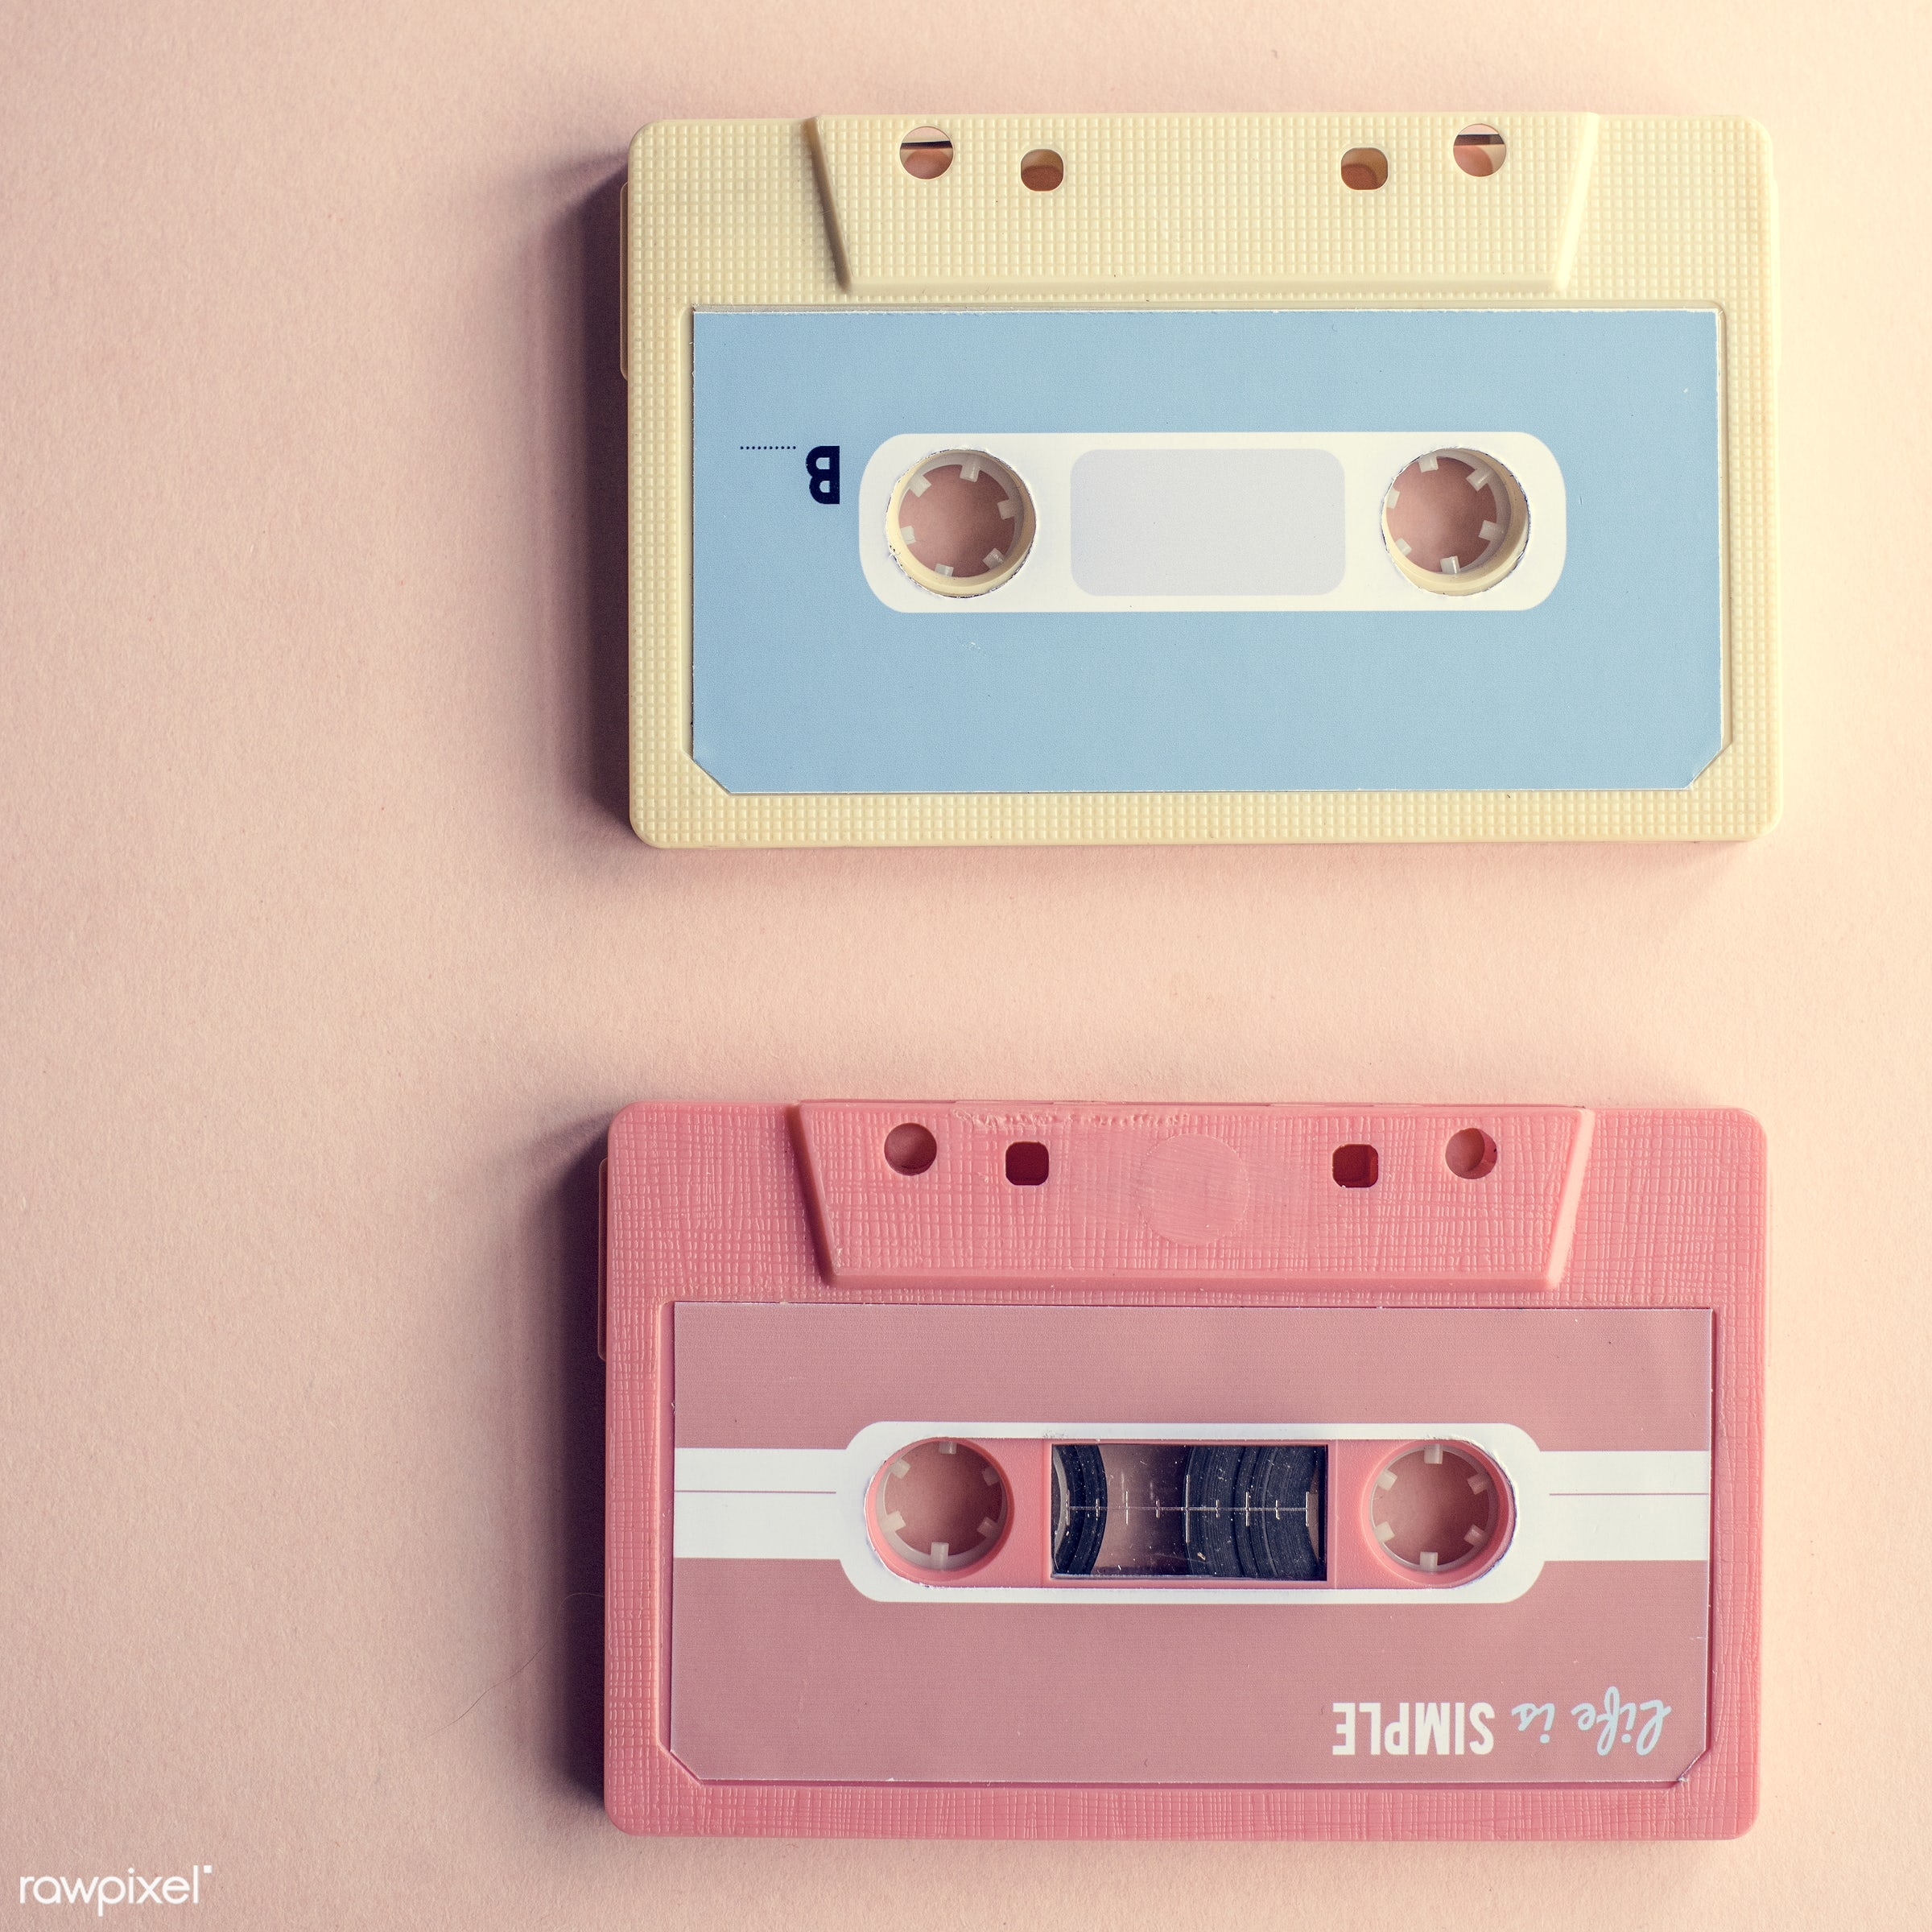 cassette, accessories, aged, analogue, audio, casette, classic, collection, compact, entertainment, equipment, media, music...